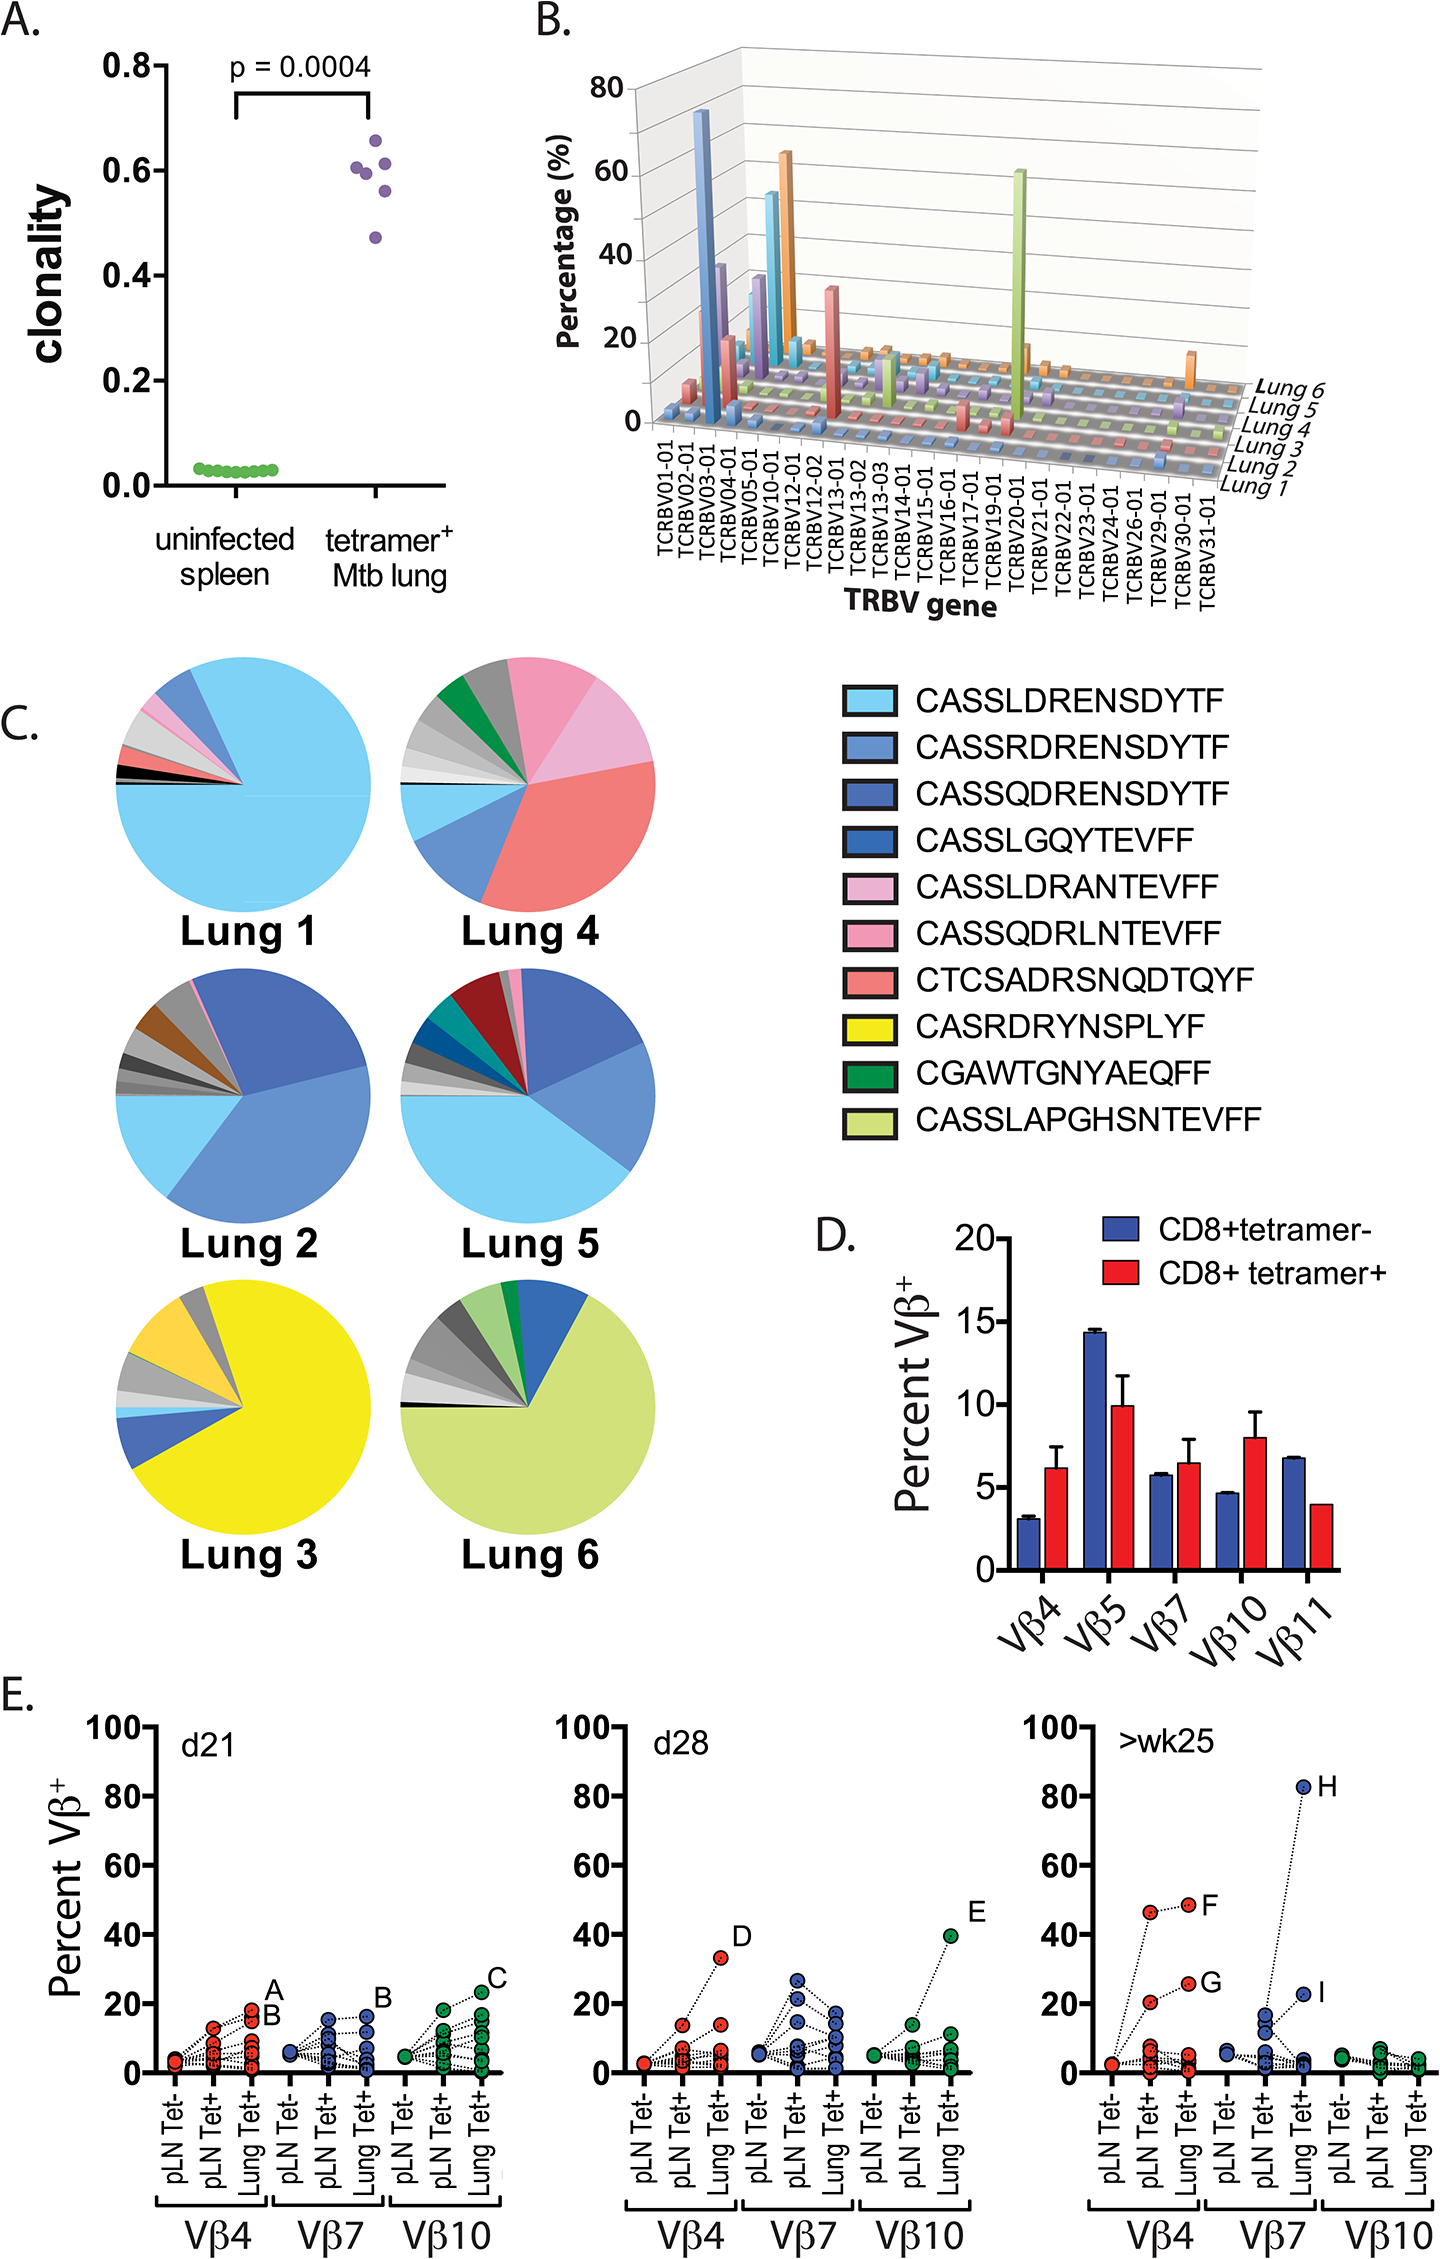 Clonal expansions of CD8+ T cells specific for the immunodominant antigen TB10.4.